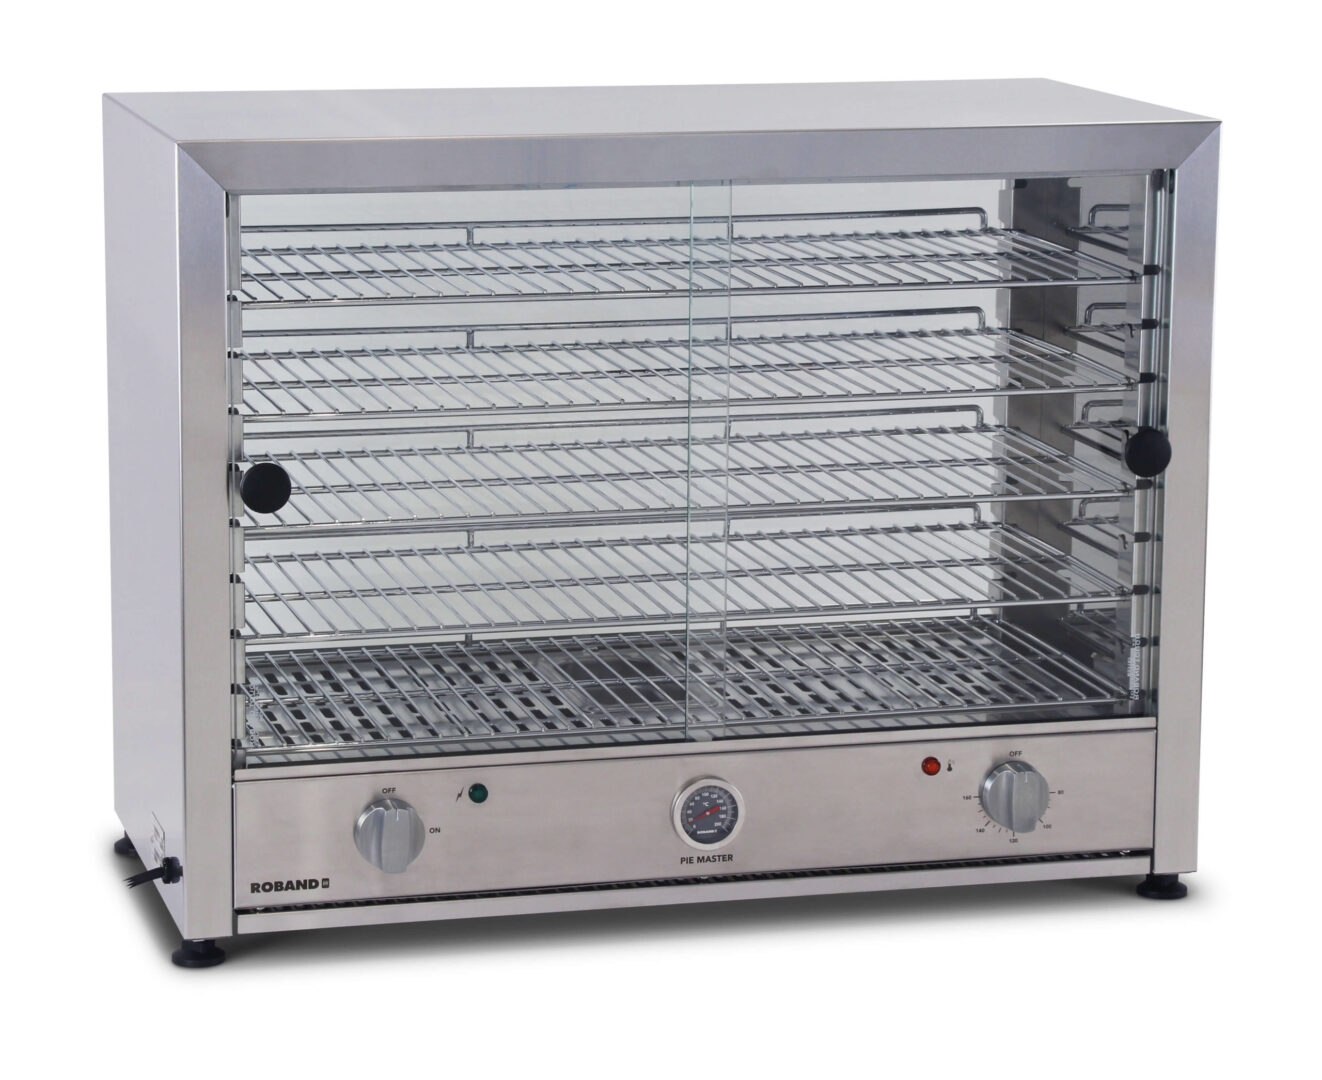 Roband PM100S Pie Master Pie Warmer – Stainless Steel Doors